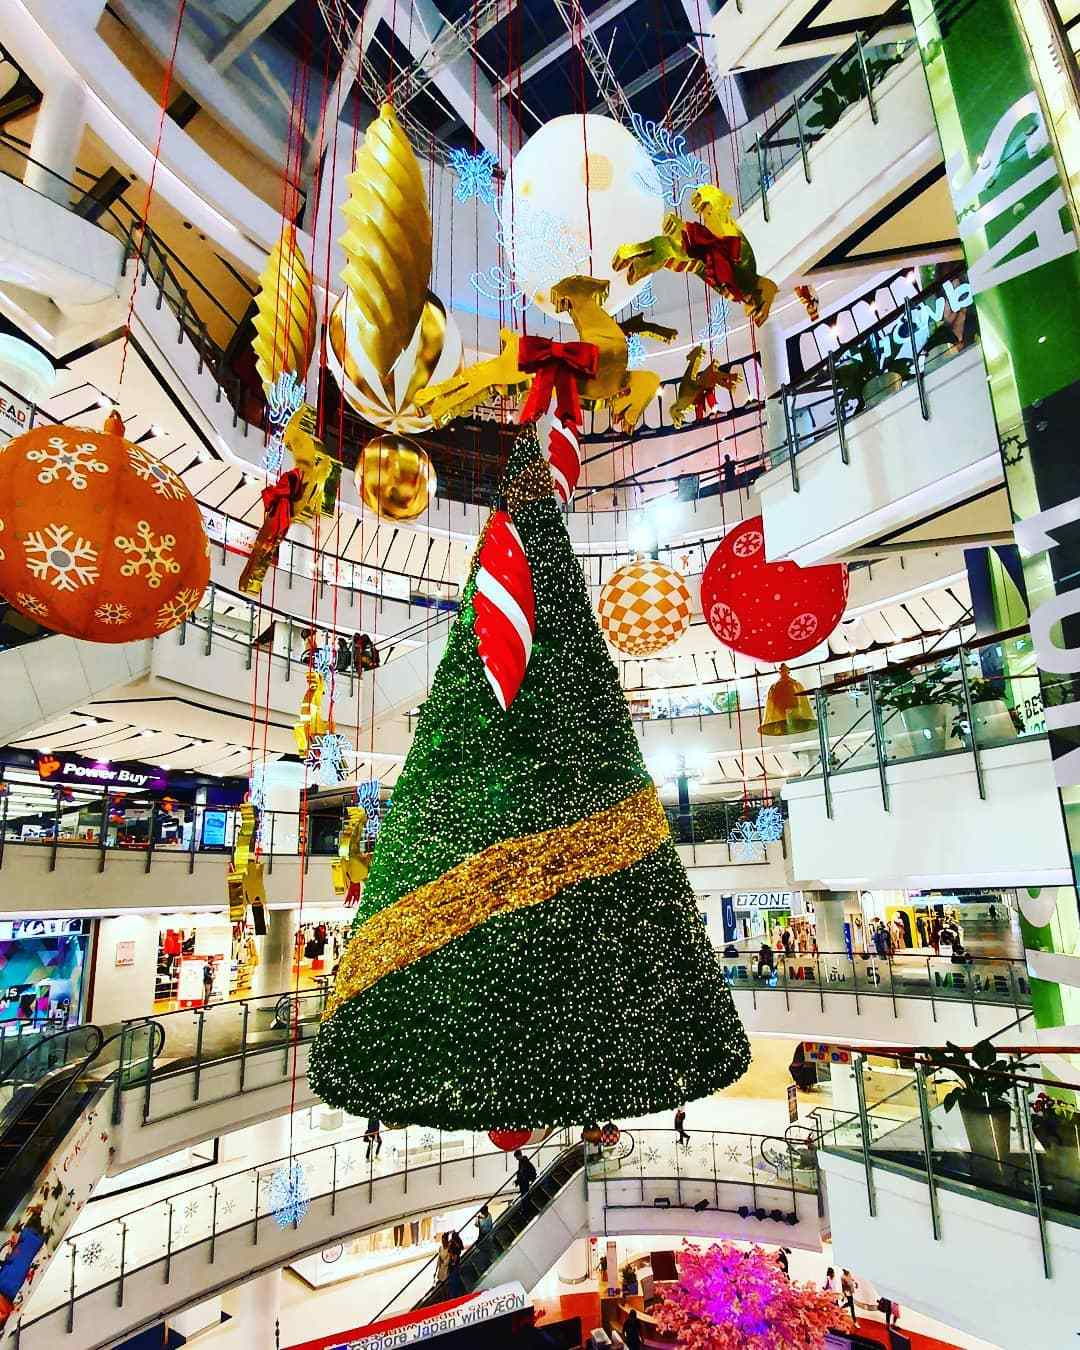 Hanging Christmas tree in a shopping mall with decoration that also hangs